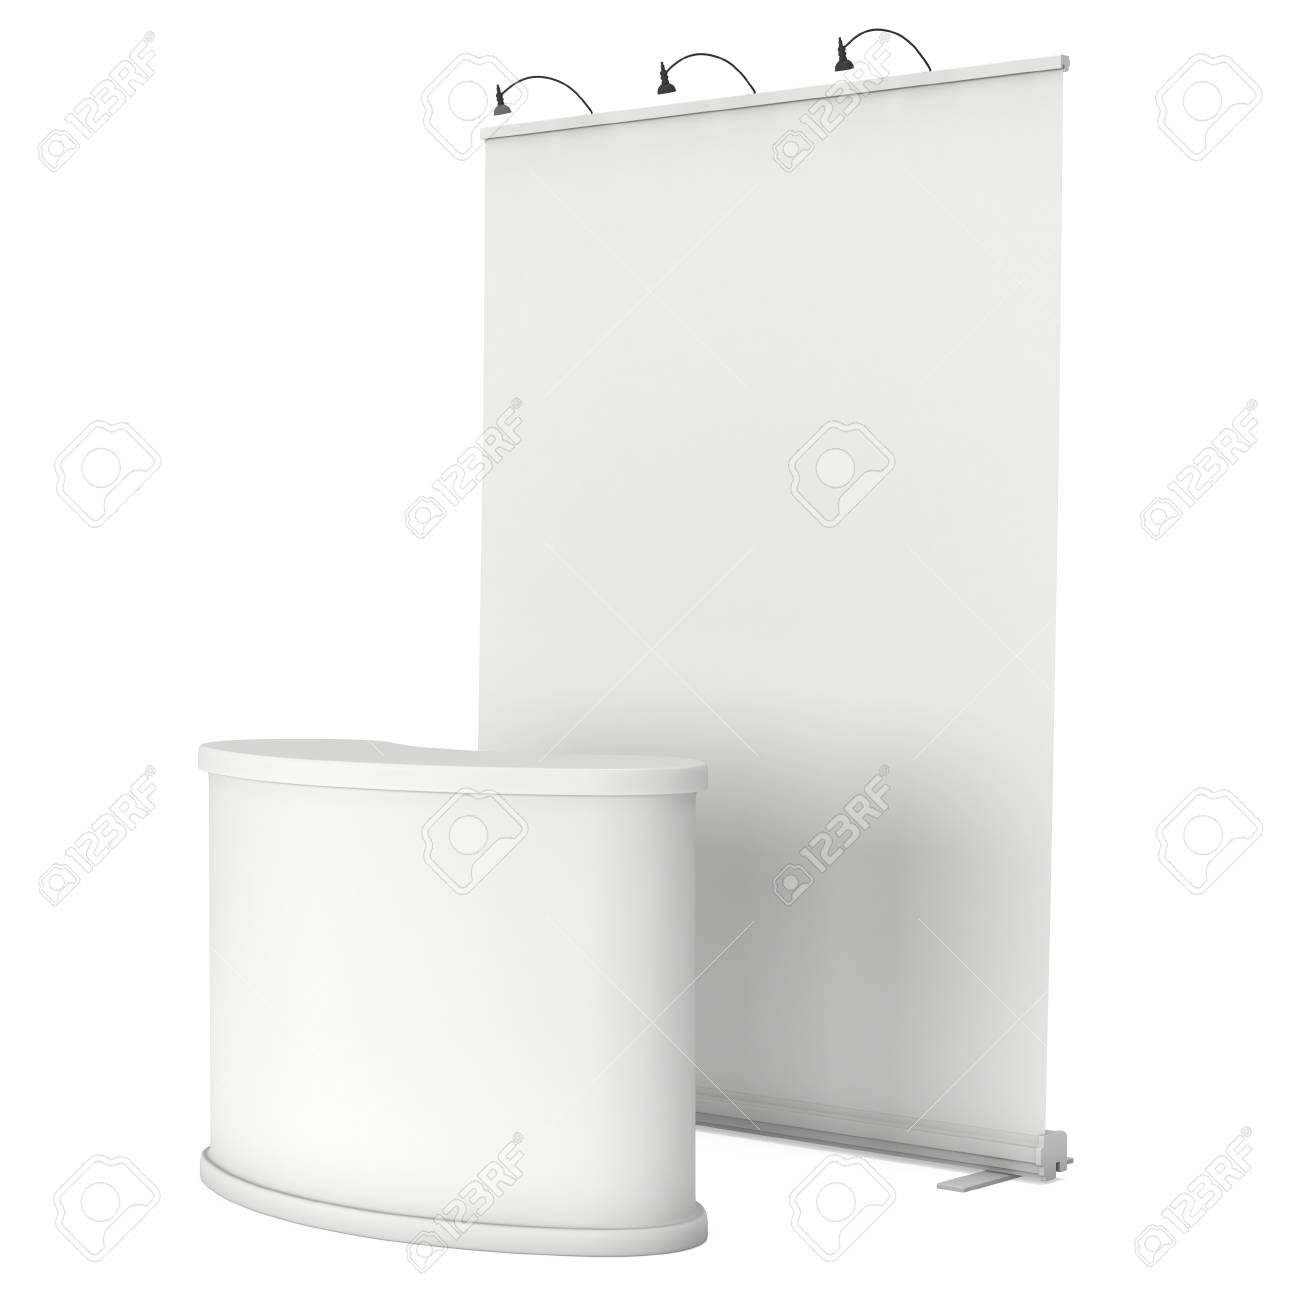 Trade Show Booth White And Blank 3d Render Isolated On White